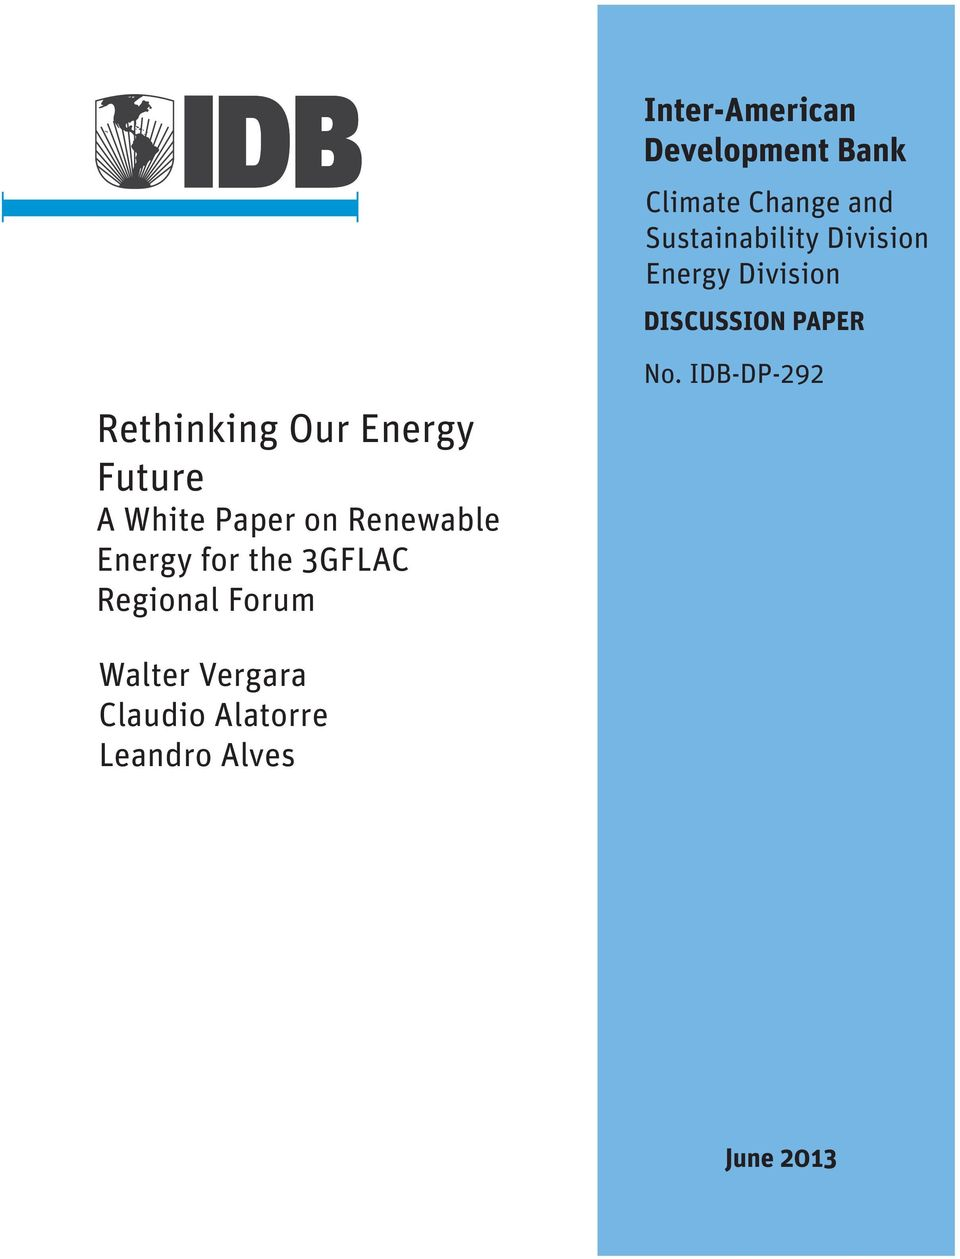 Future A White Paper on Renewable Energy for the 3GFLAC Regional